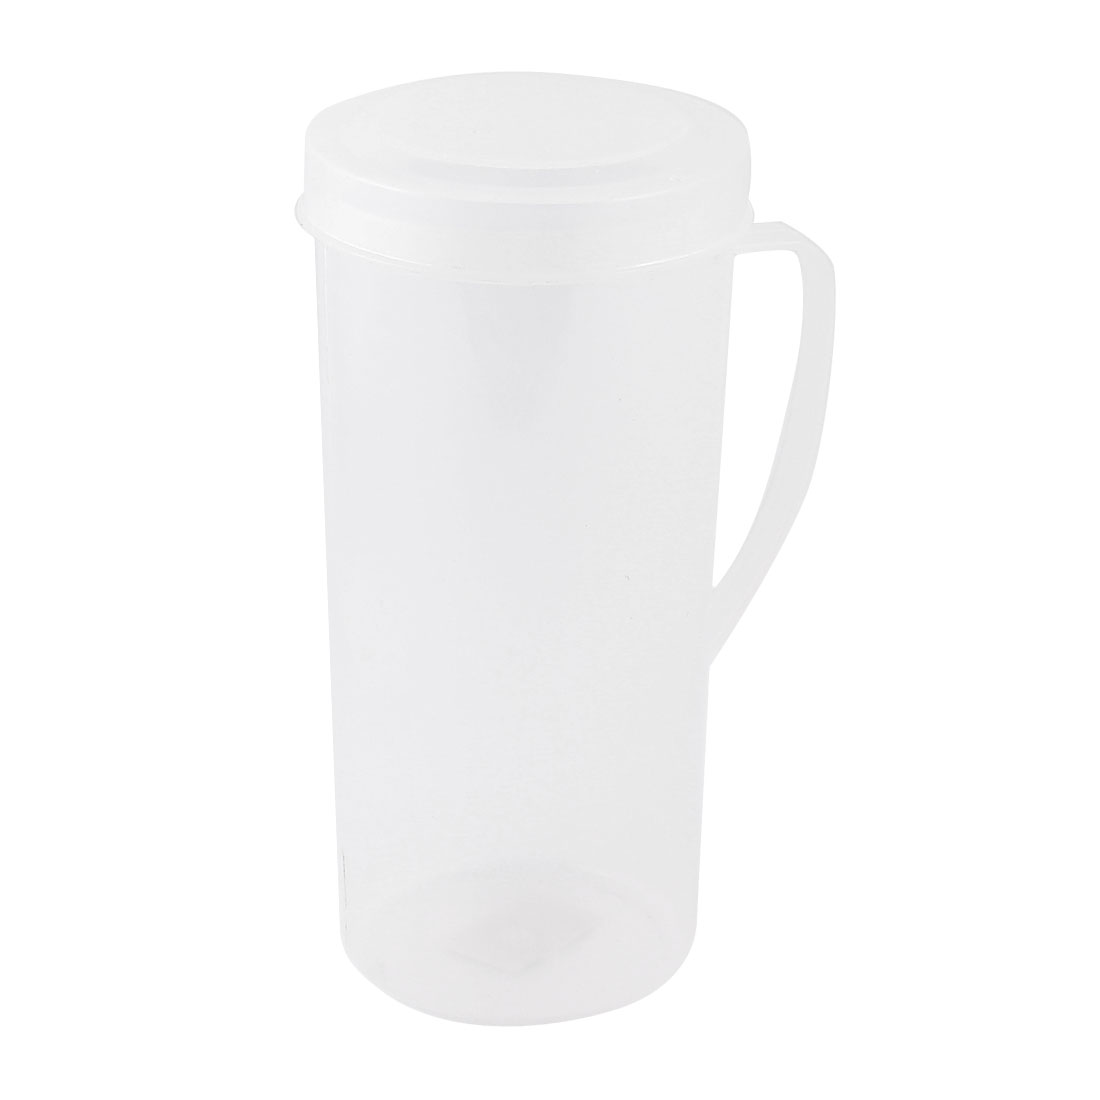 Clear White -20Celsius- 120Celsius Milk Heated Microwave Breakfast Cup